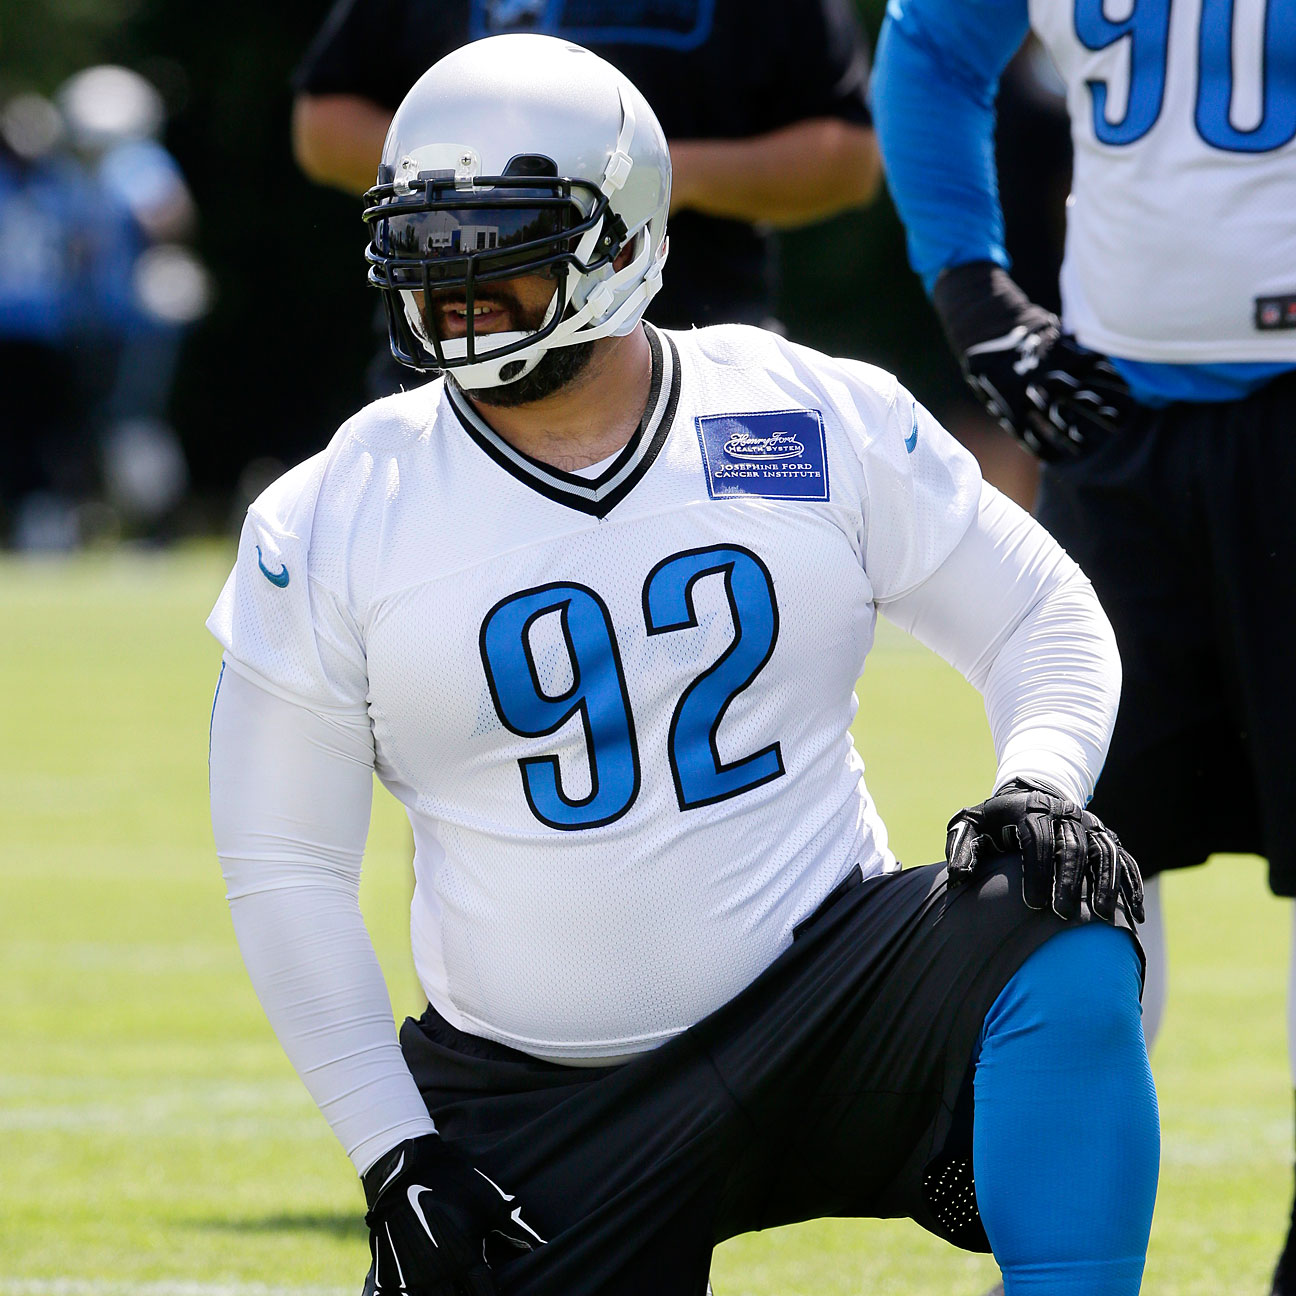 Haloti Ngata hoping to shake off some dust in Detroit Lions ret…